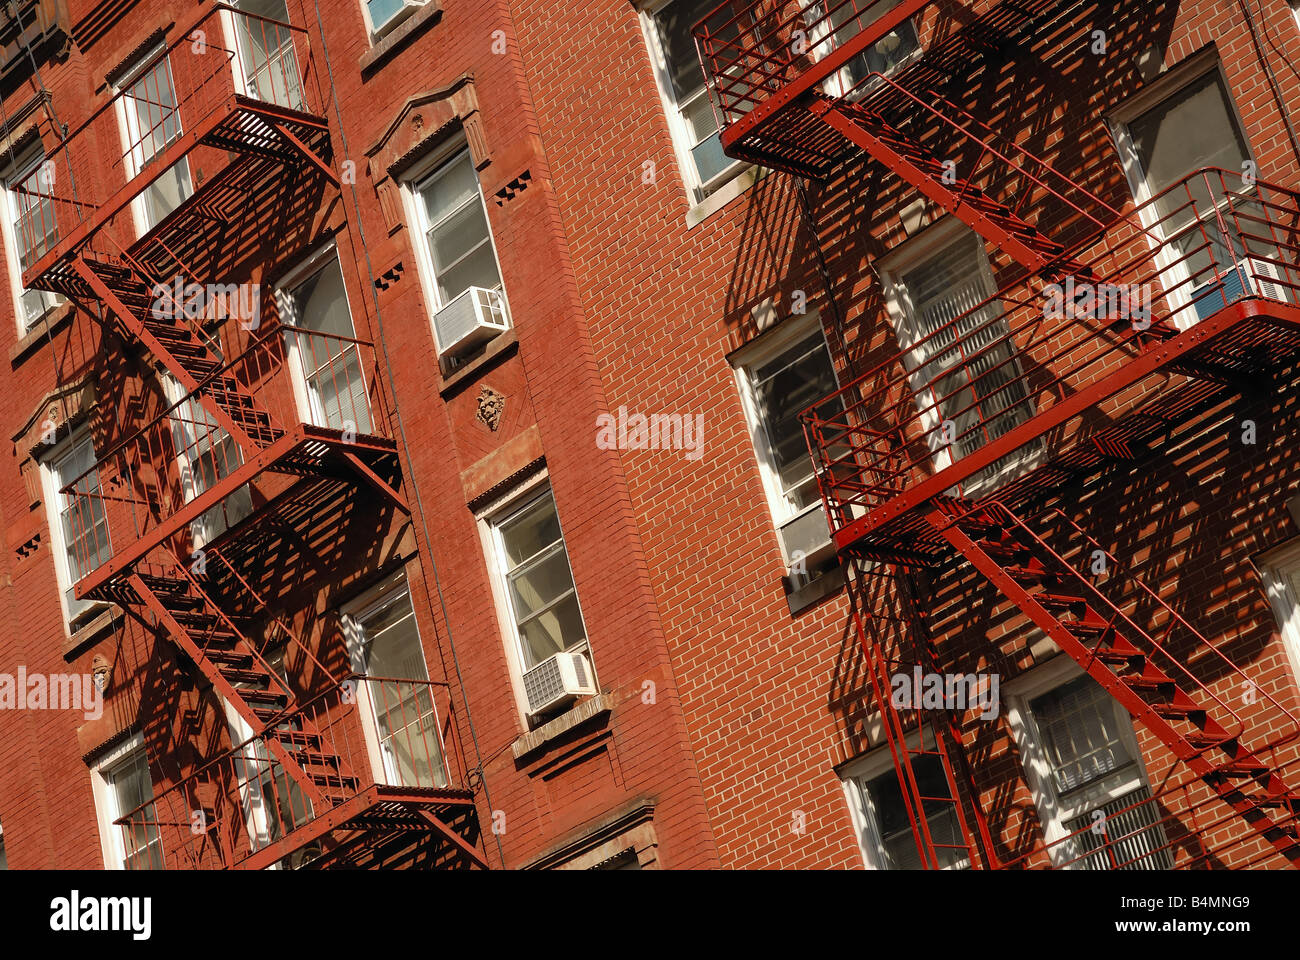 A New York neighborhood brick apartment as viewed from the street. Stock Photo